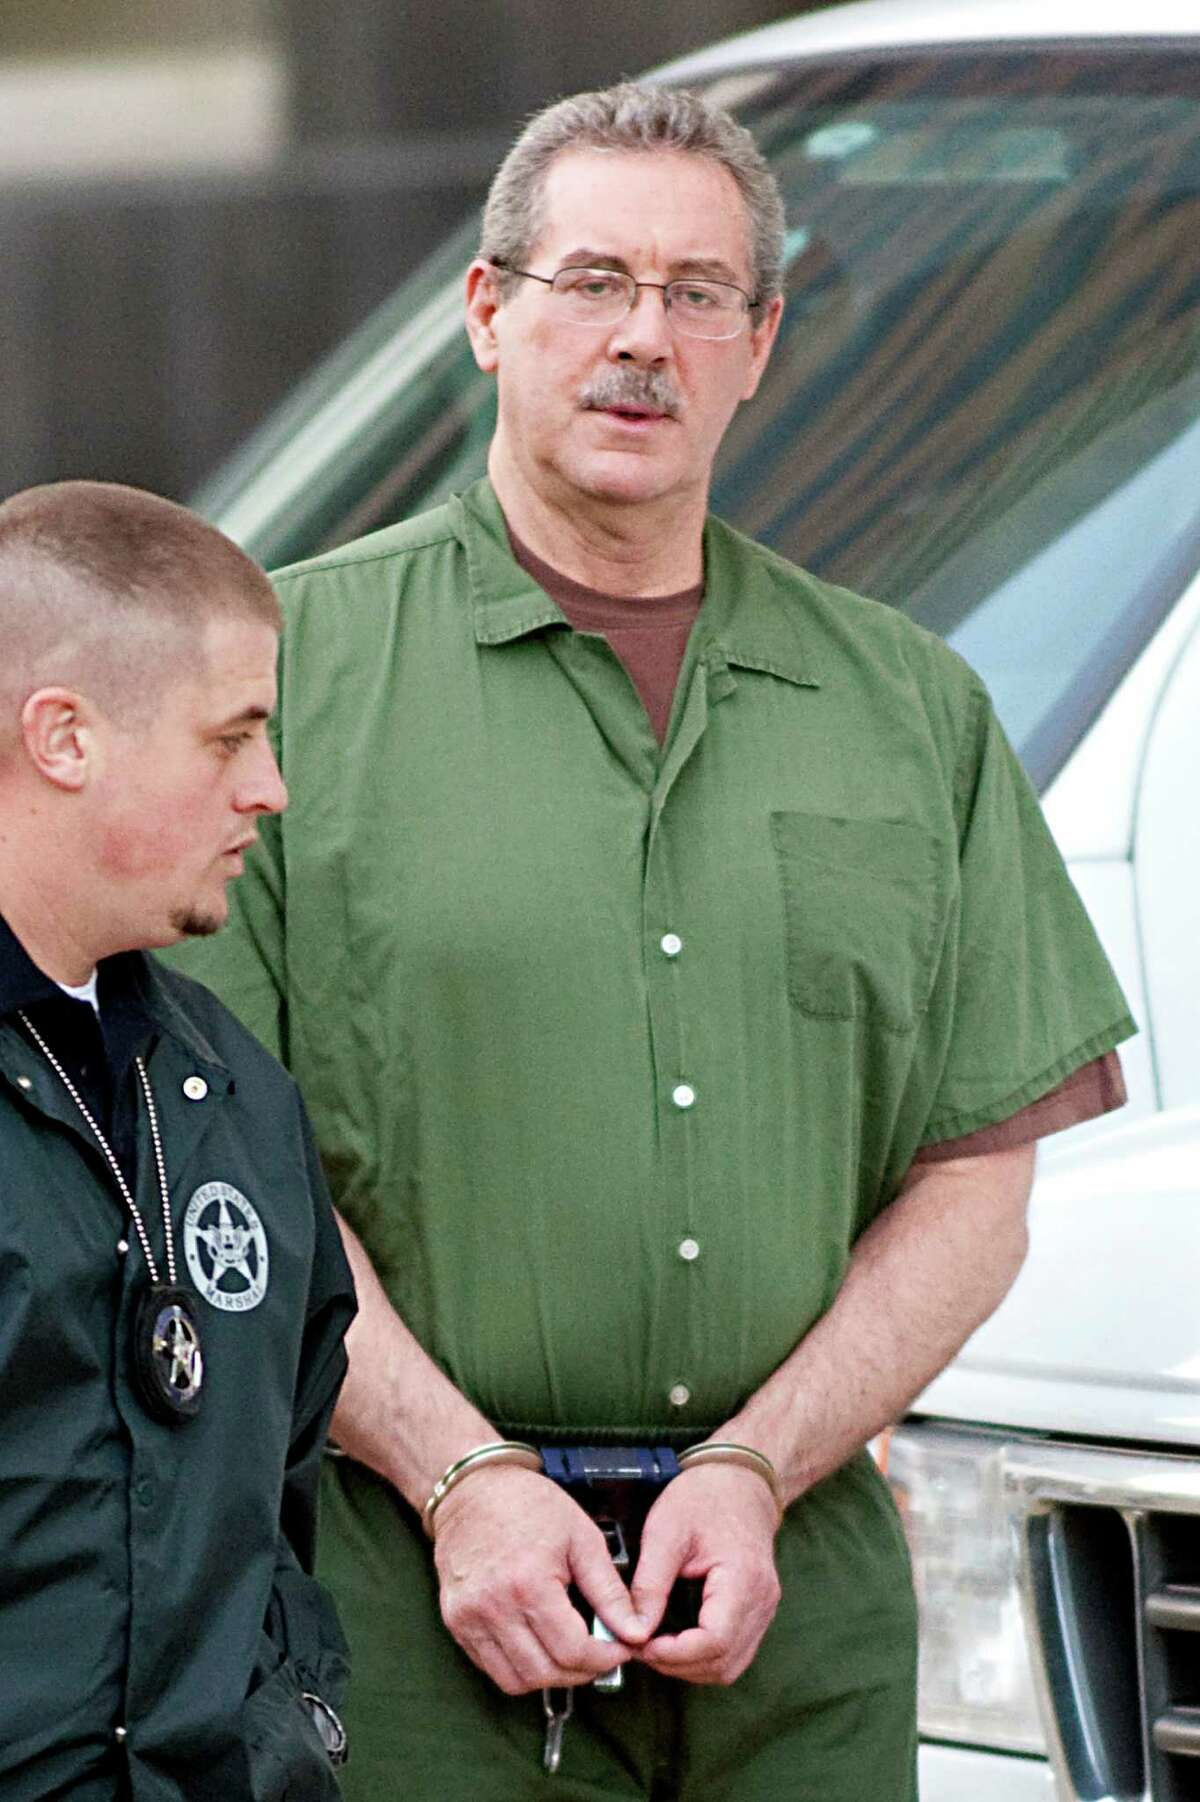 Indicted financier R. Allen Stanford, accused of leading a $7 billion investment fraud scheme, arrives for a hearing at the Bob Casey Federal Courthouse in Houston, Texas, U.S,. on Thursday, Jan. 6, 2011. Stanford's court-appointed defense lawyers told the court that their client may be psychologically unfit to stand trial and have asked for a hearing to assess his competency. Photographer: F. Carter Smith/Bloomberg *** Local Caption *** R. Allen Stanford